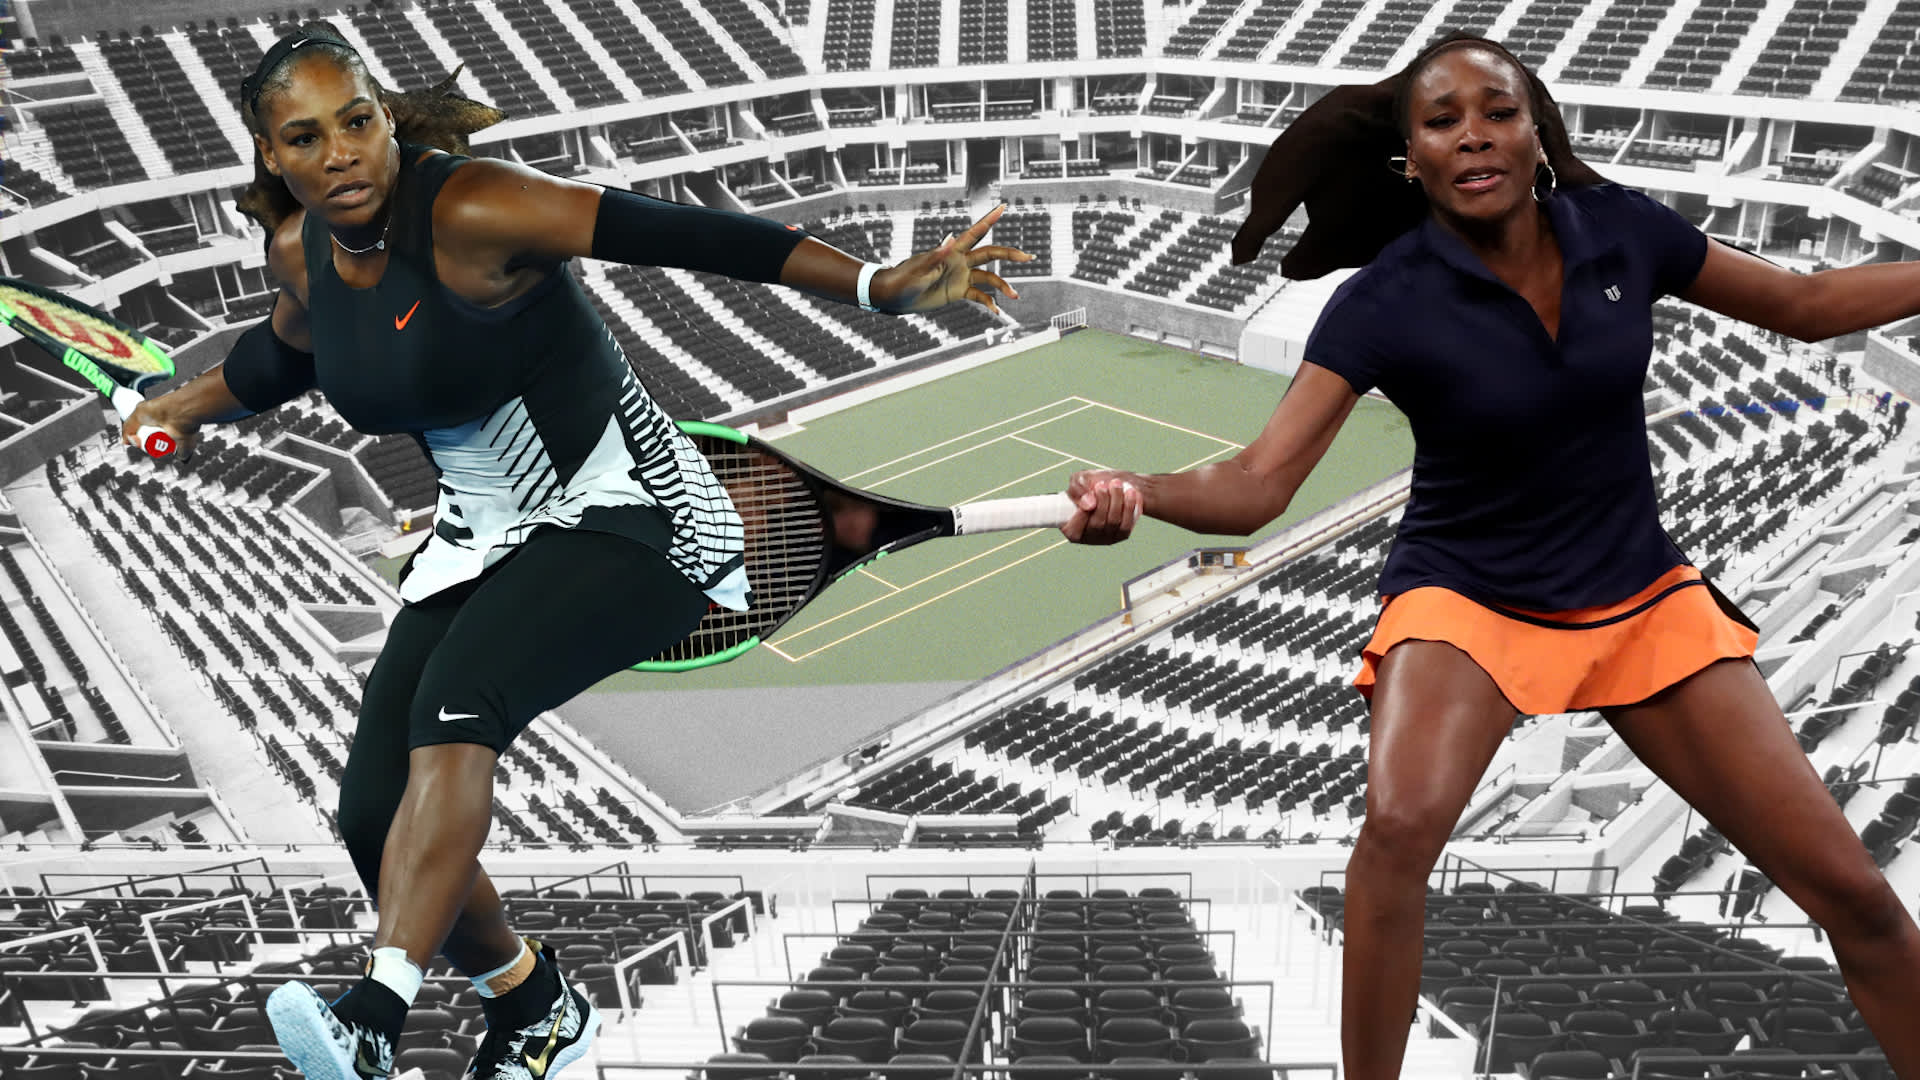 Serena Williams has made $89 million in career prize money—and could earn millions more on Saturday